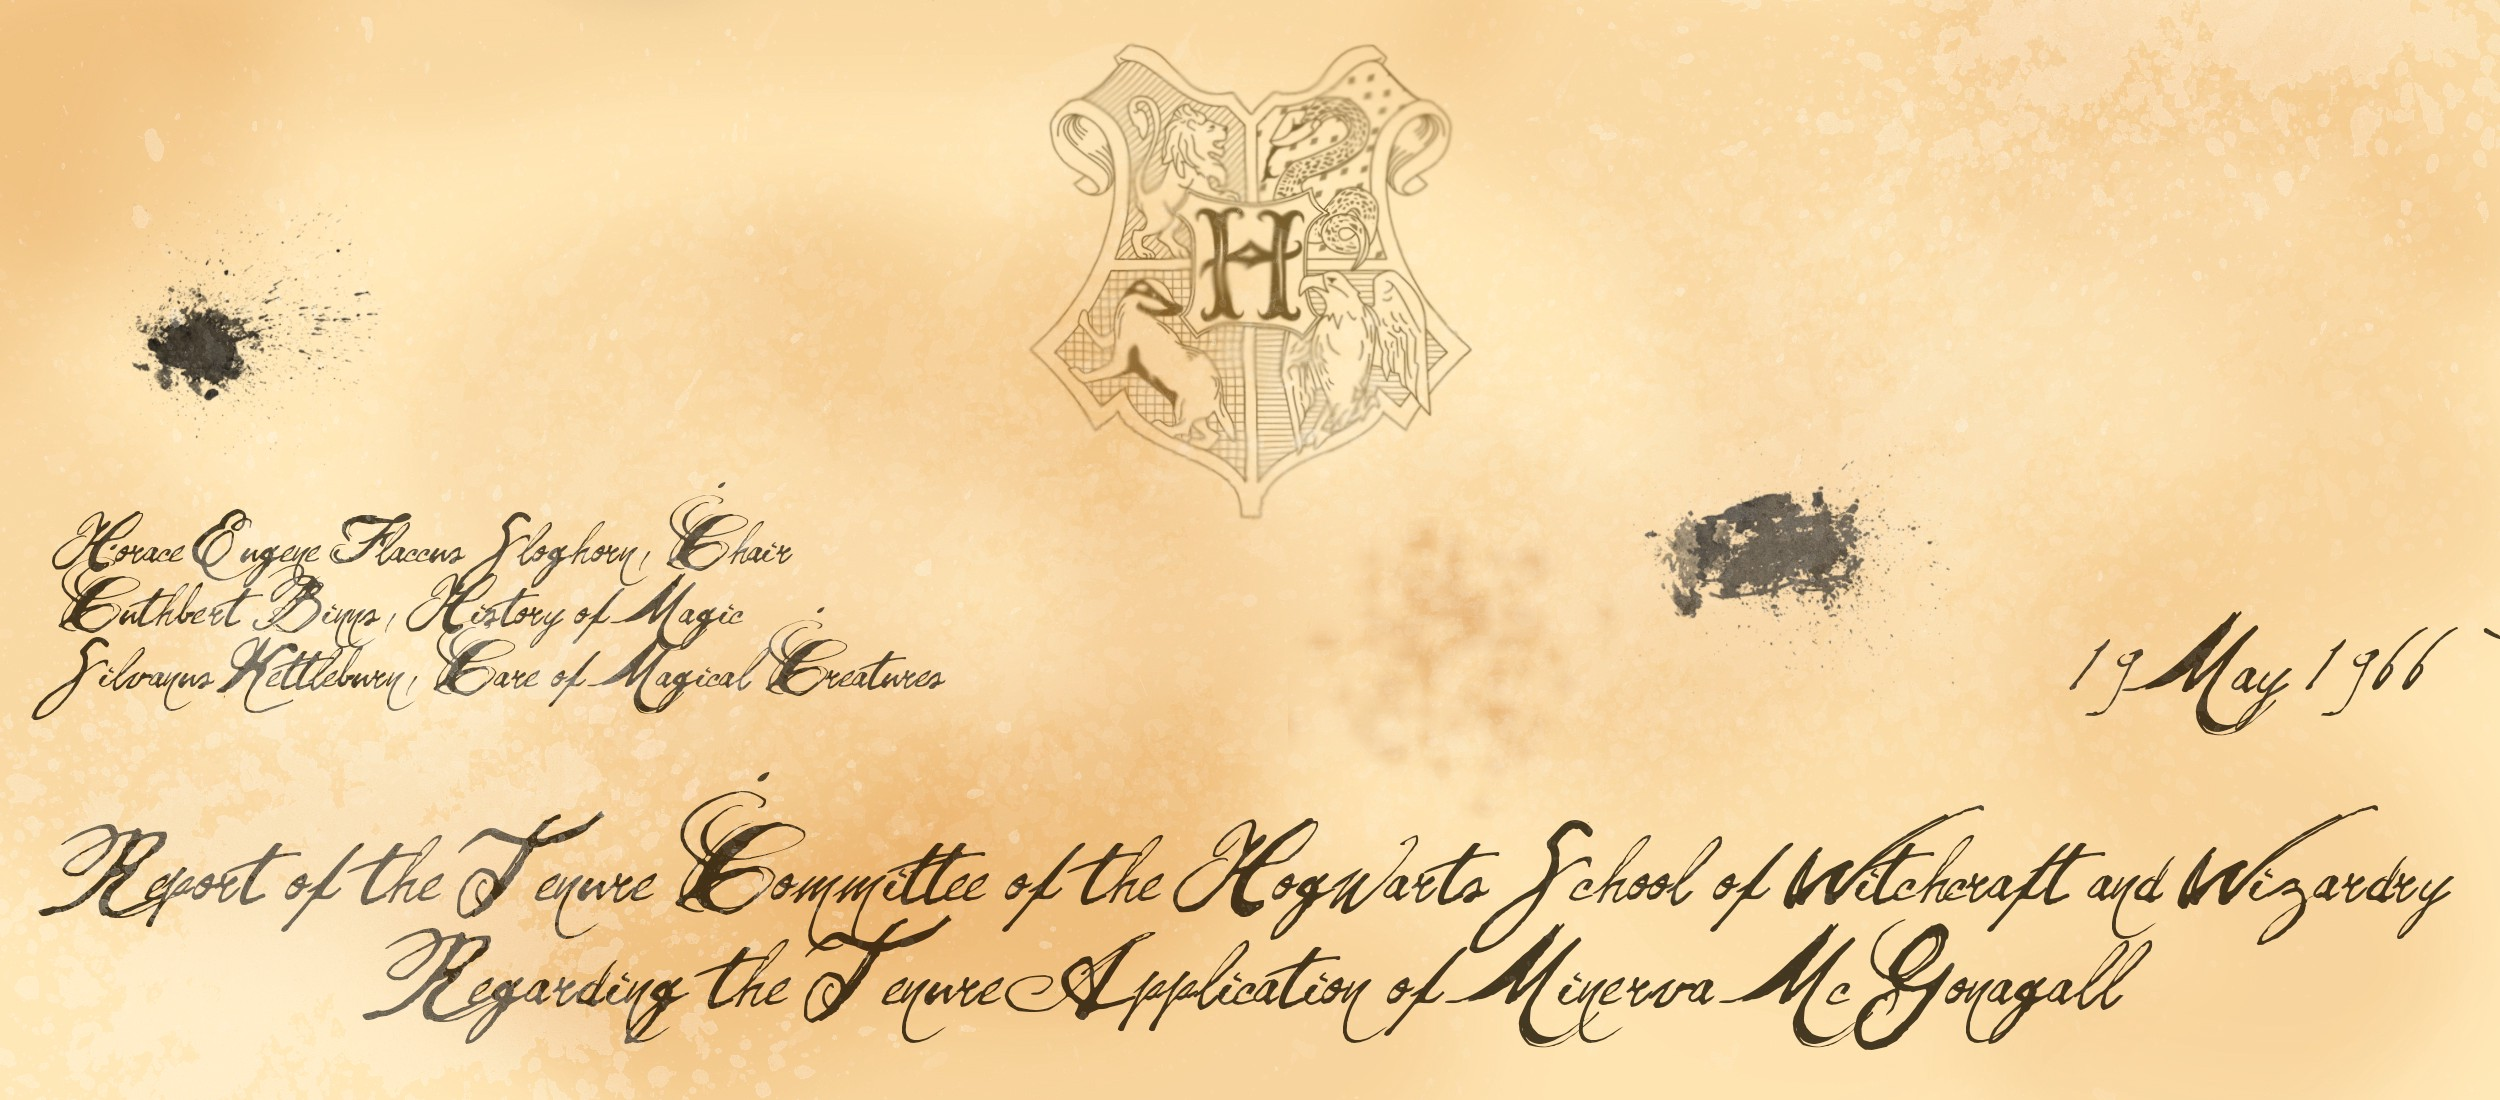 551c74e5ea Report of the Tenure Committee of the Hogwarts School of Witchcraft and  Wizardry Regarding The Tenure Application of Minerva McGonagall